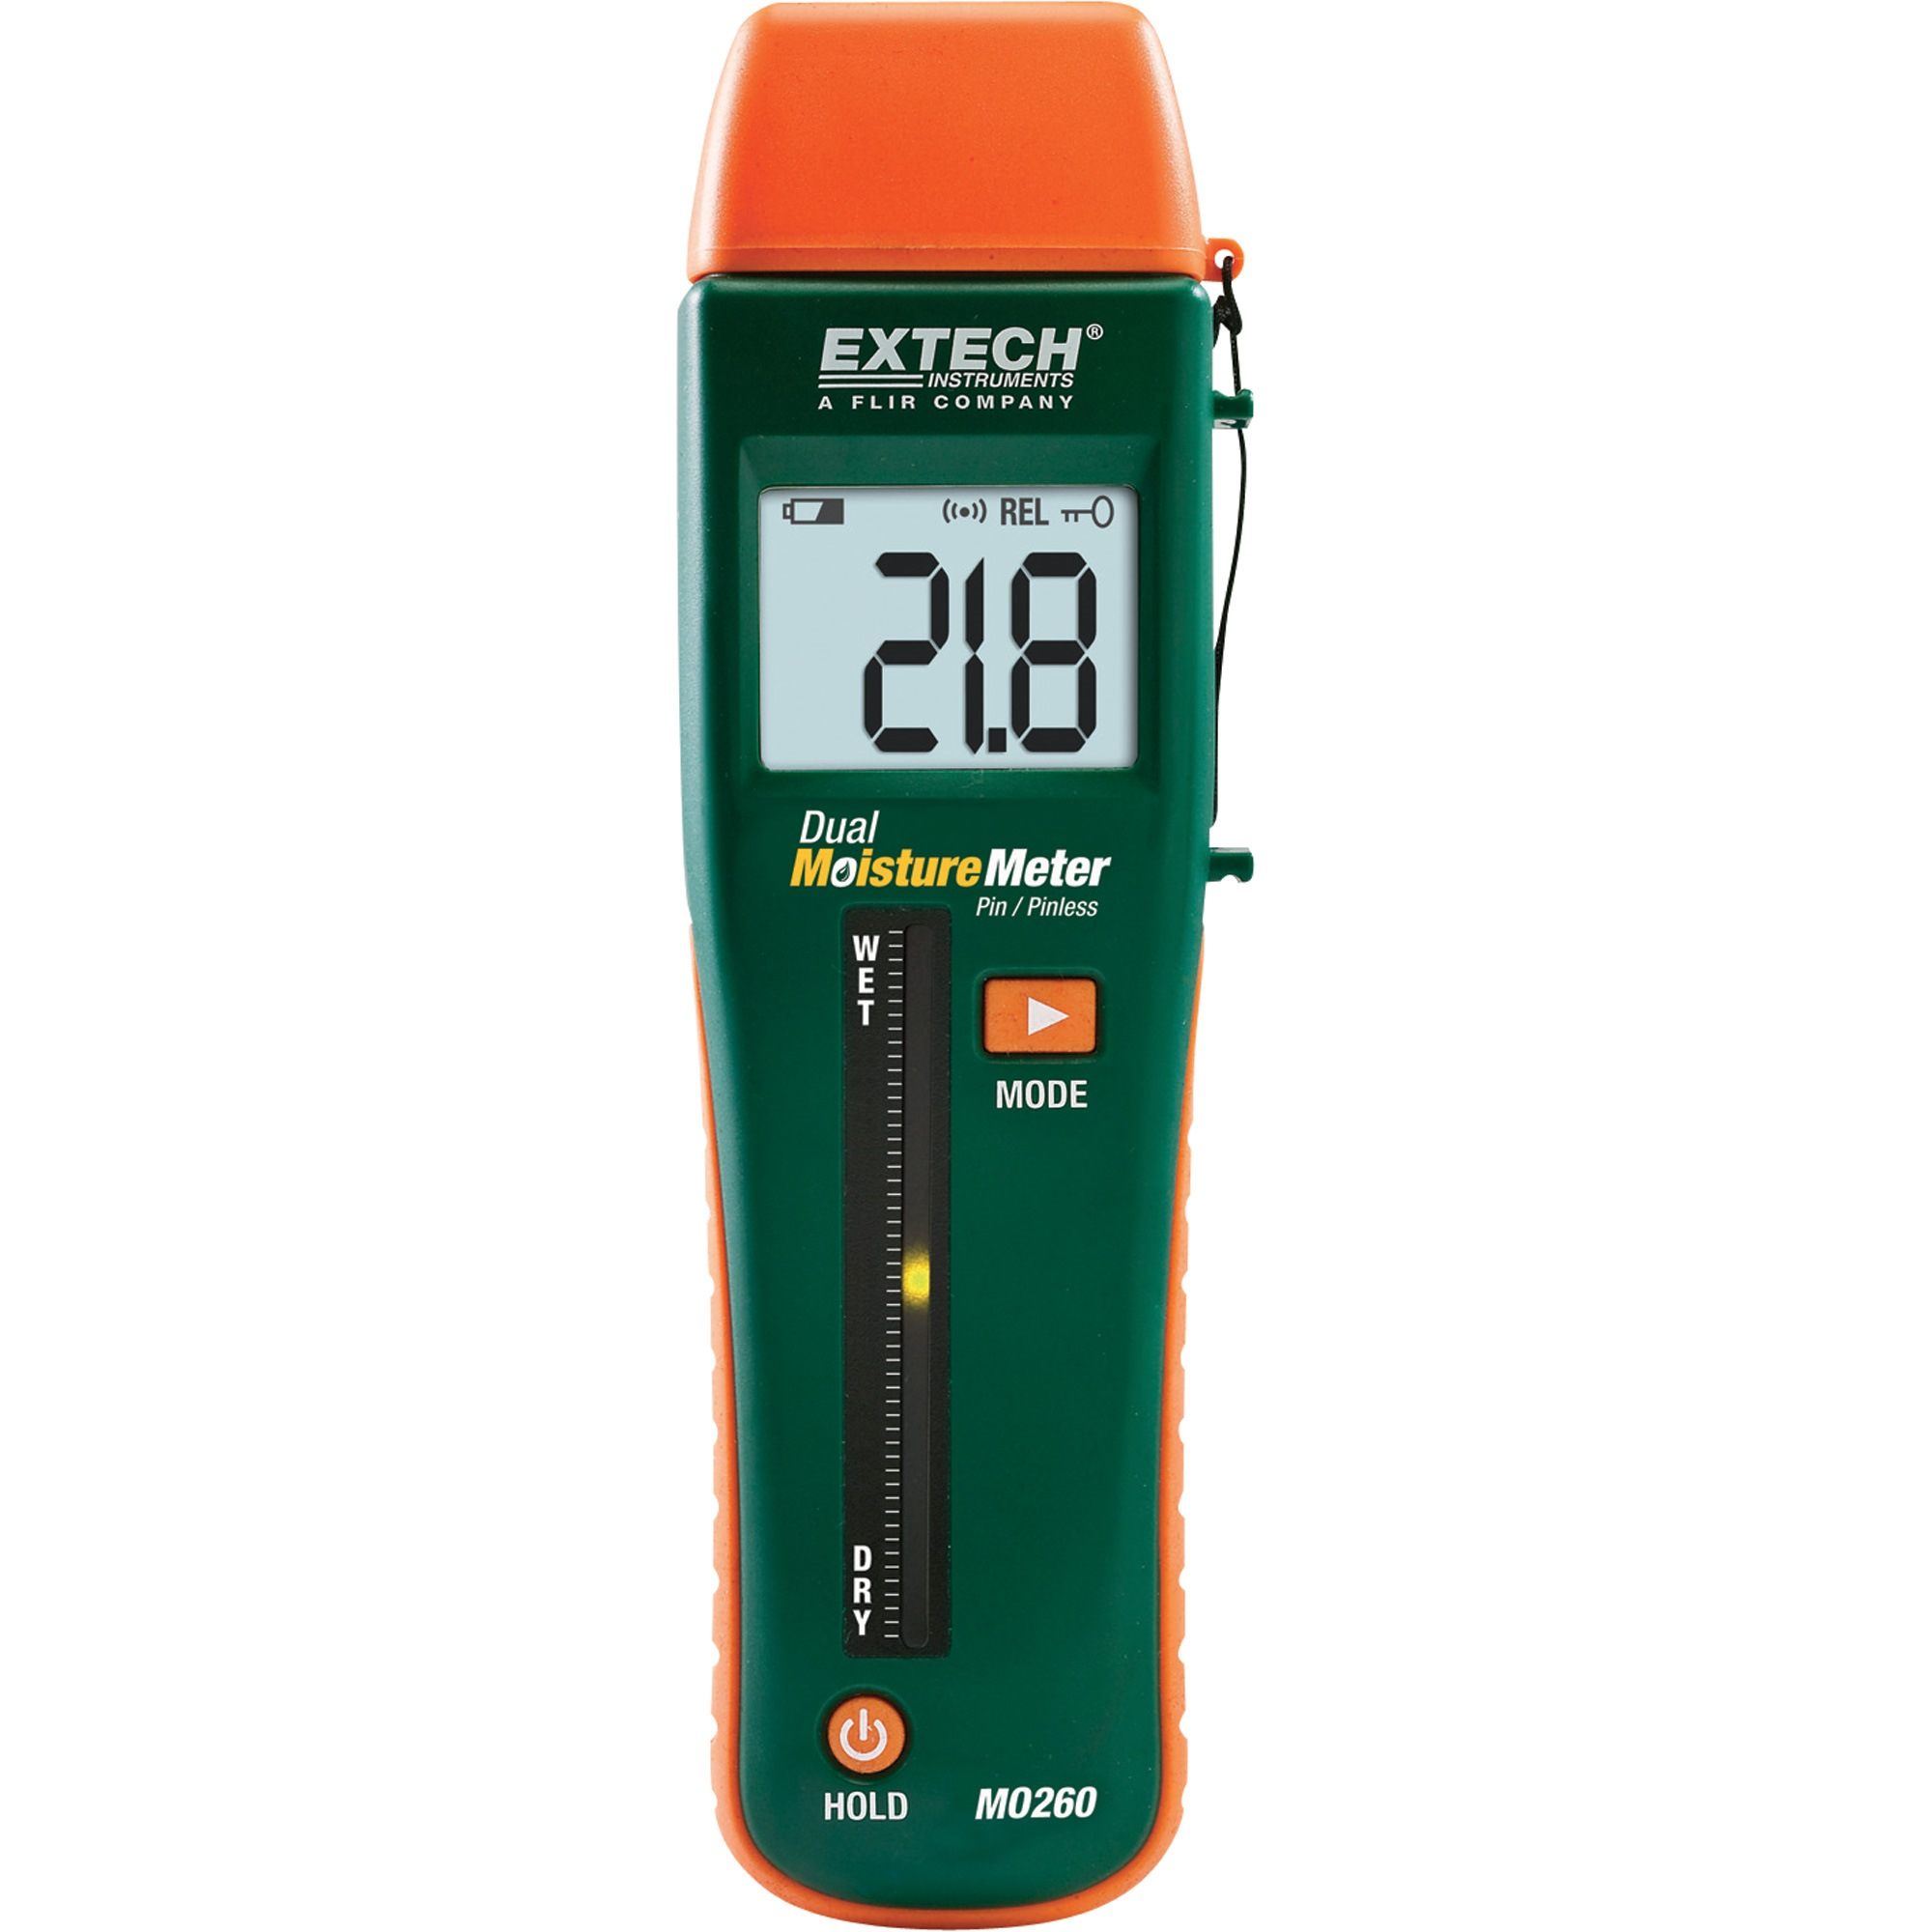 Extech Combination Pin/pinless Moisture Meter MO260